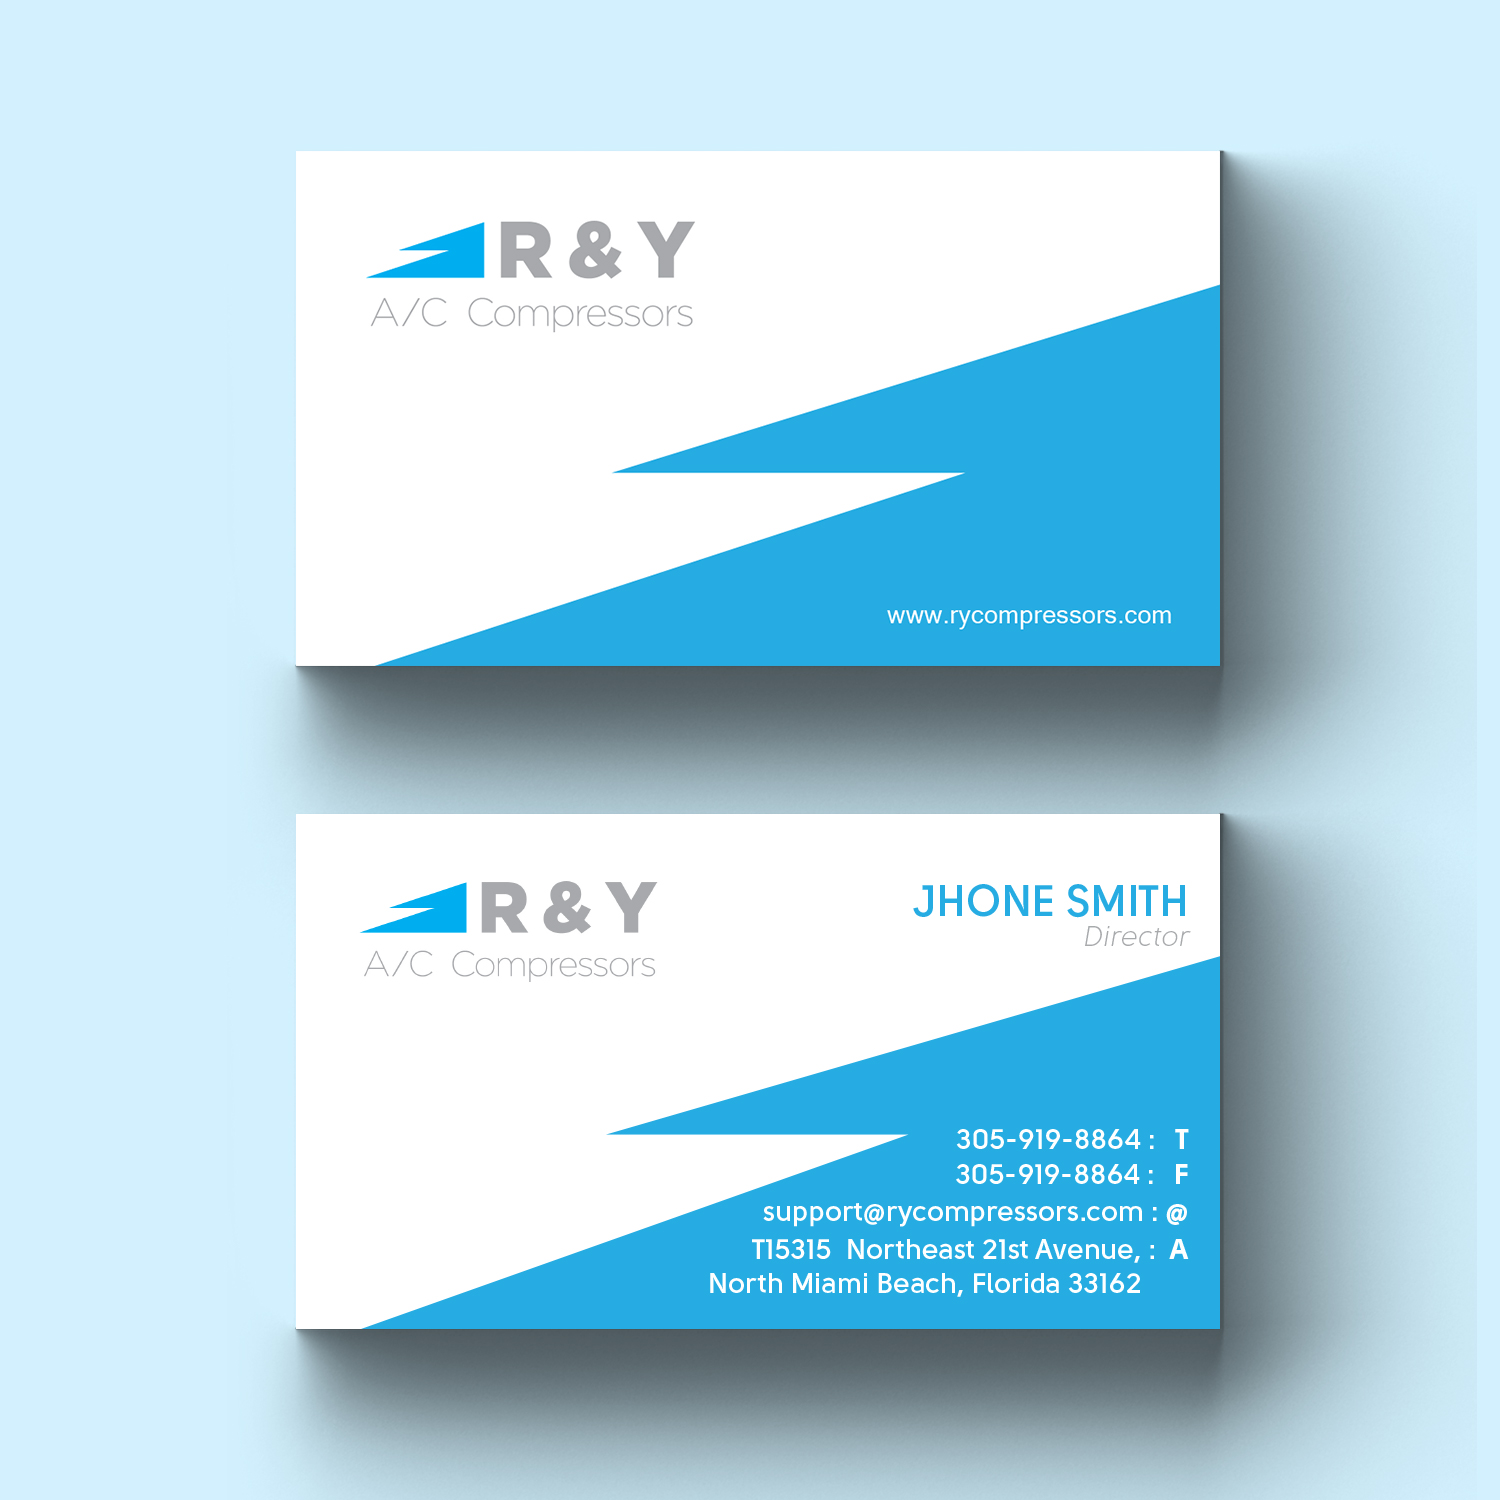 Professional modern automotive business card design for r y ac business card design by my d for r y ac compressors design colourmoves